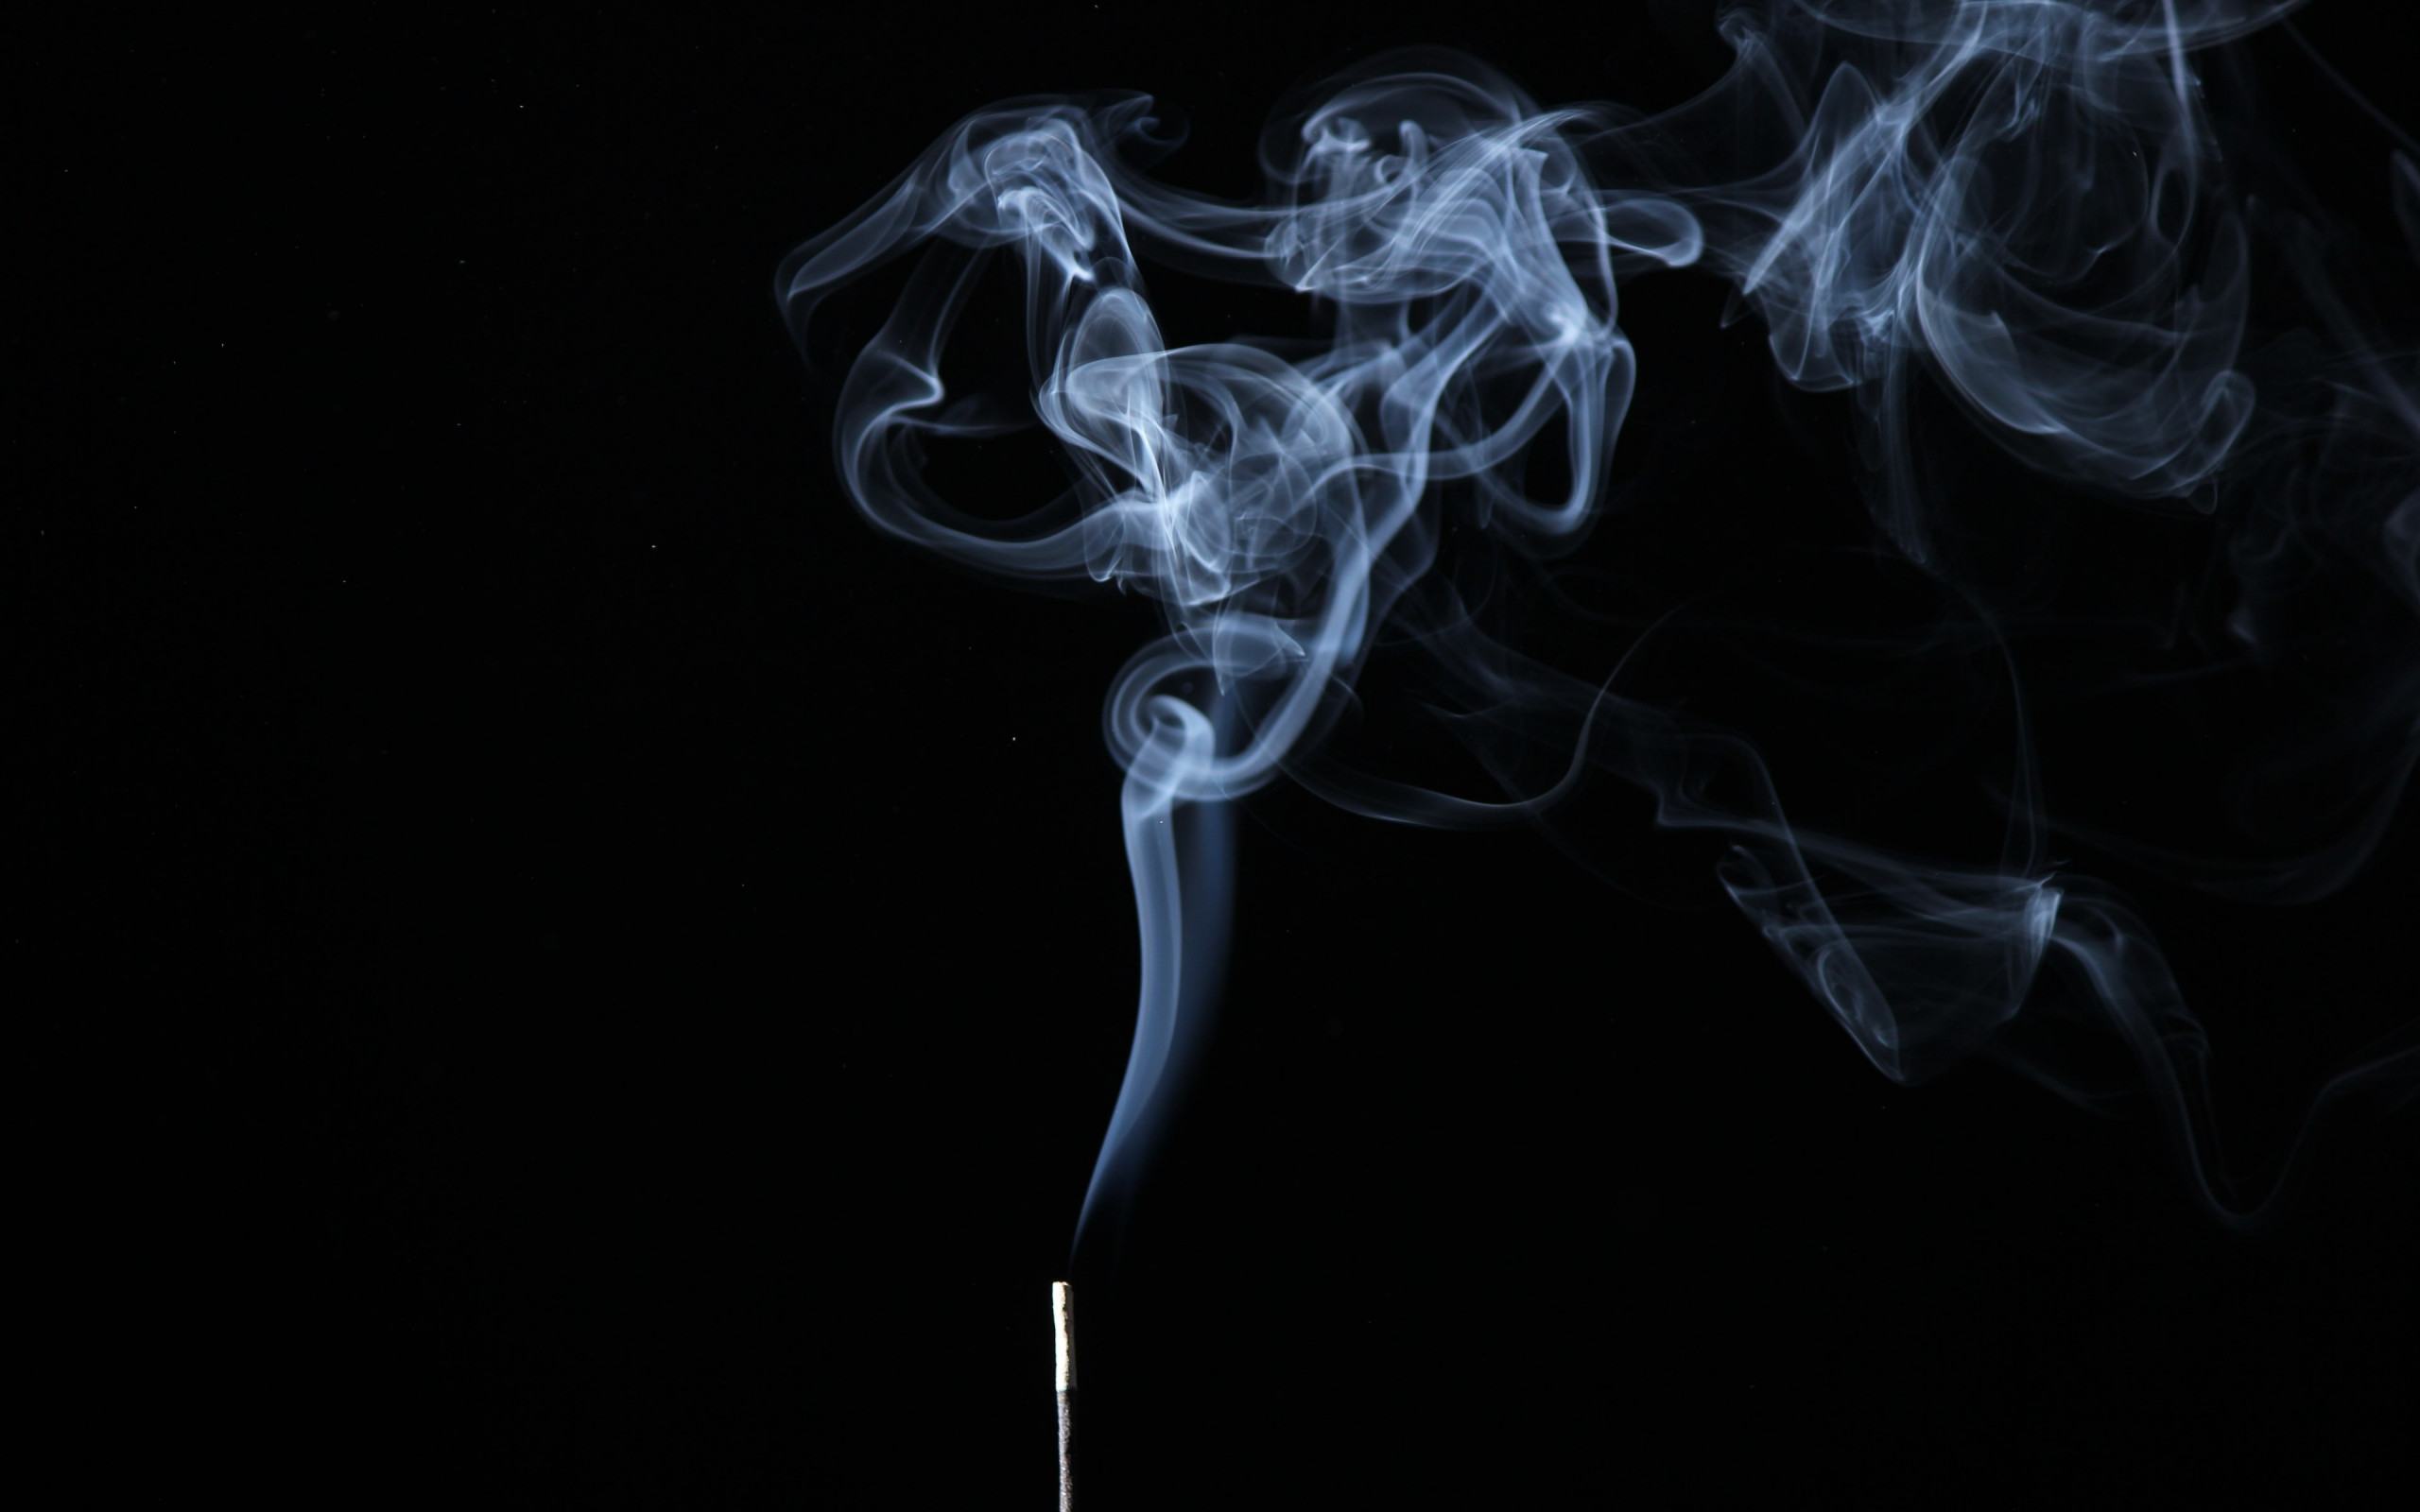 Smoke on black background wallpaper 2560x1600